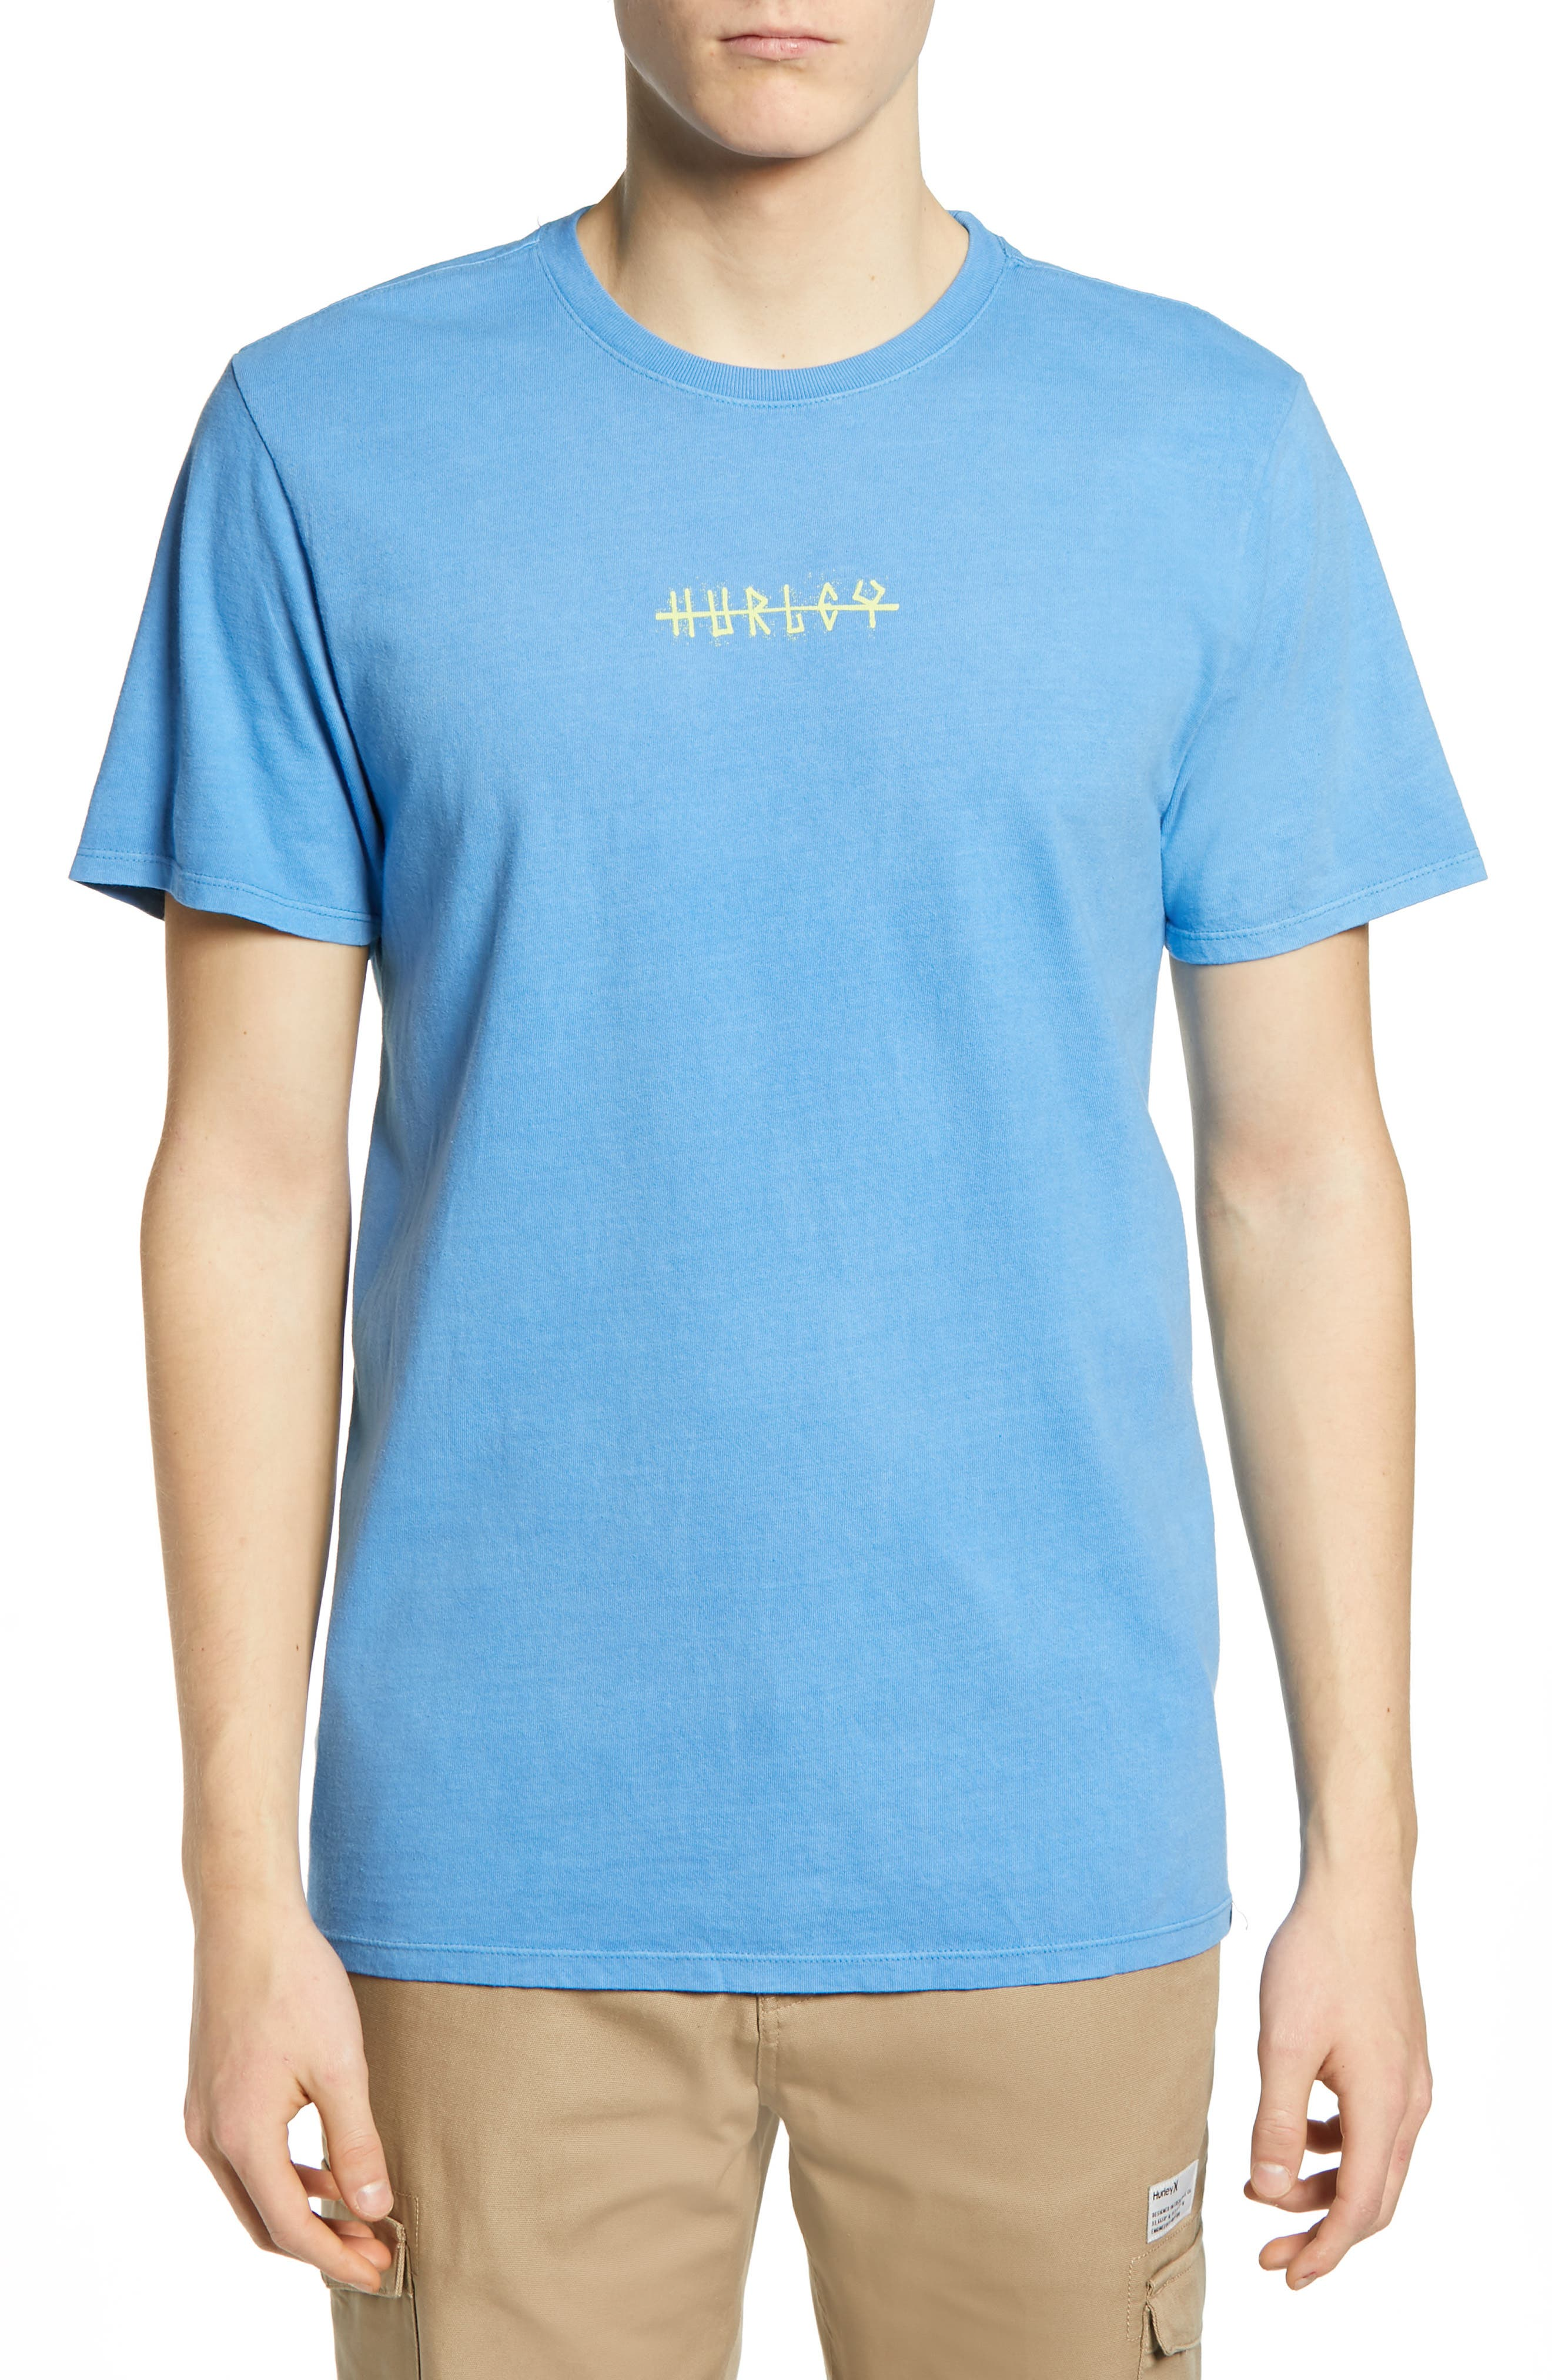 Hurley Mens T Shirts Stylish Comfort Clothing Shirt Heavy Welcome To Paradise Blue